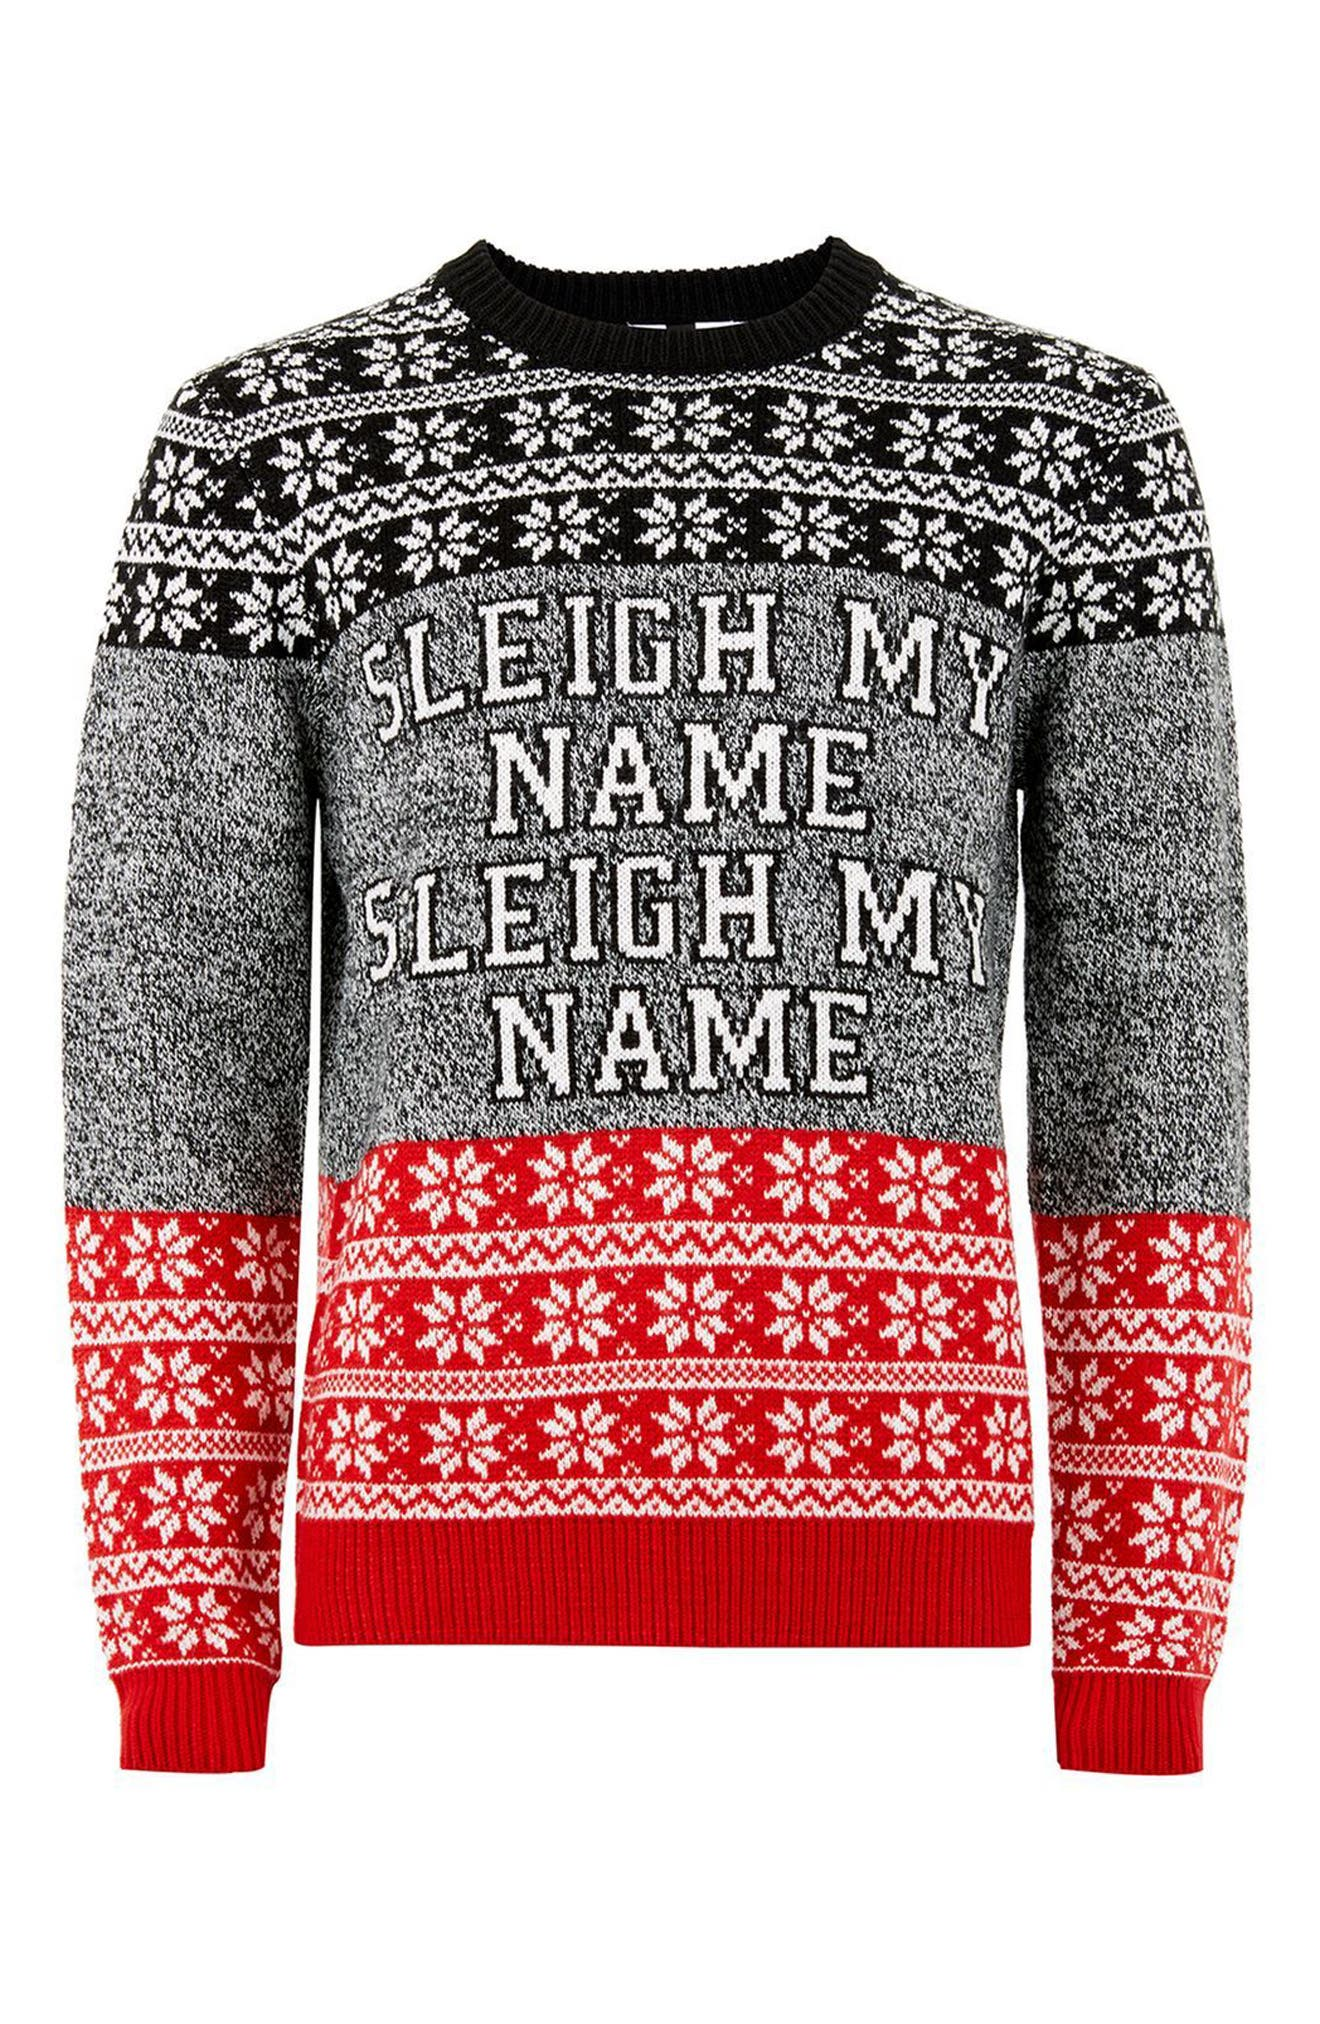 Sleigh My Name Sweater,                             Alternate thumbnail 3, color,